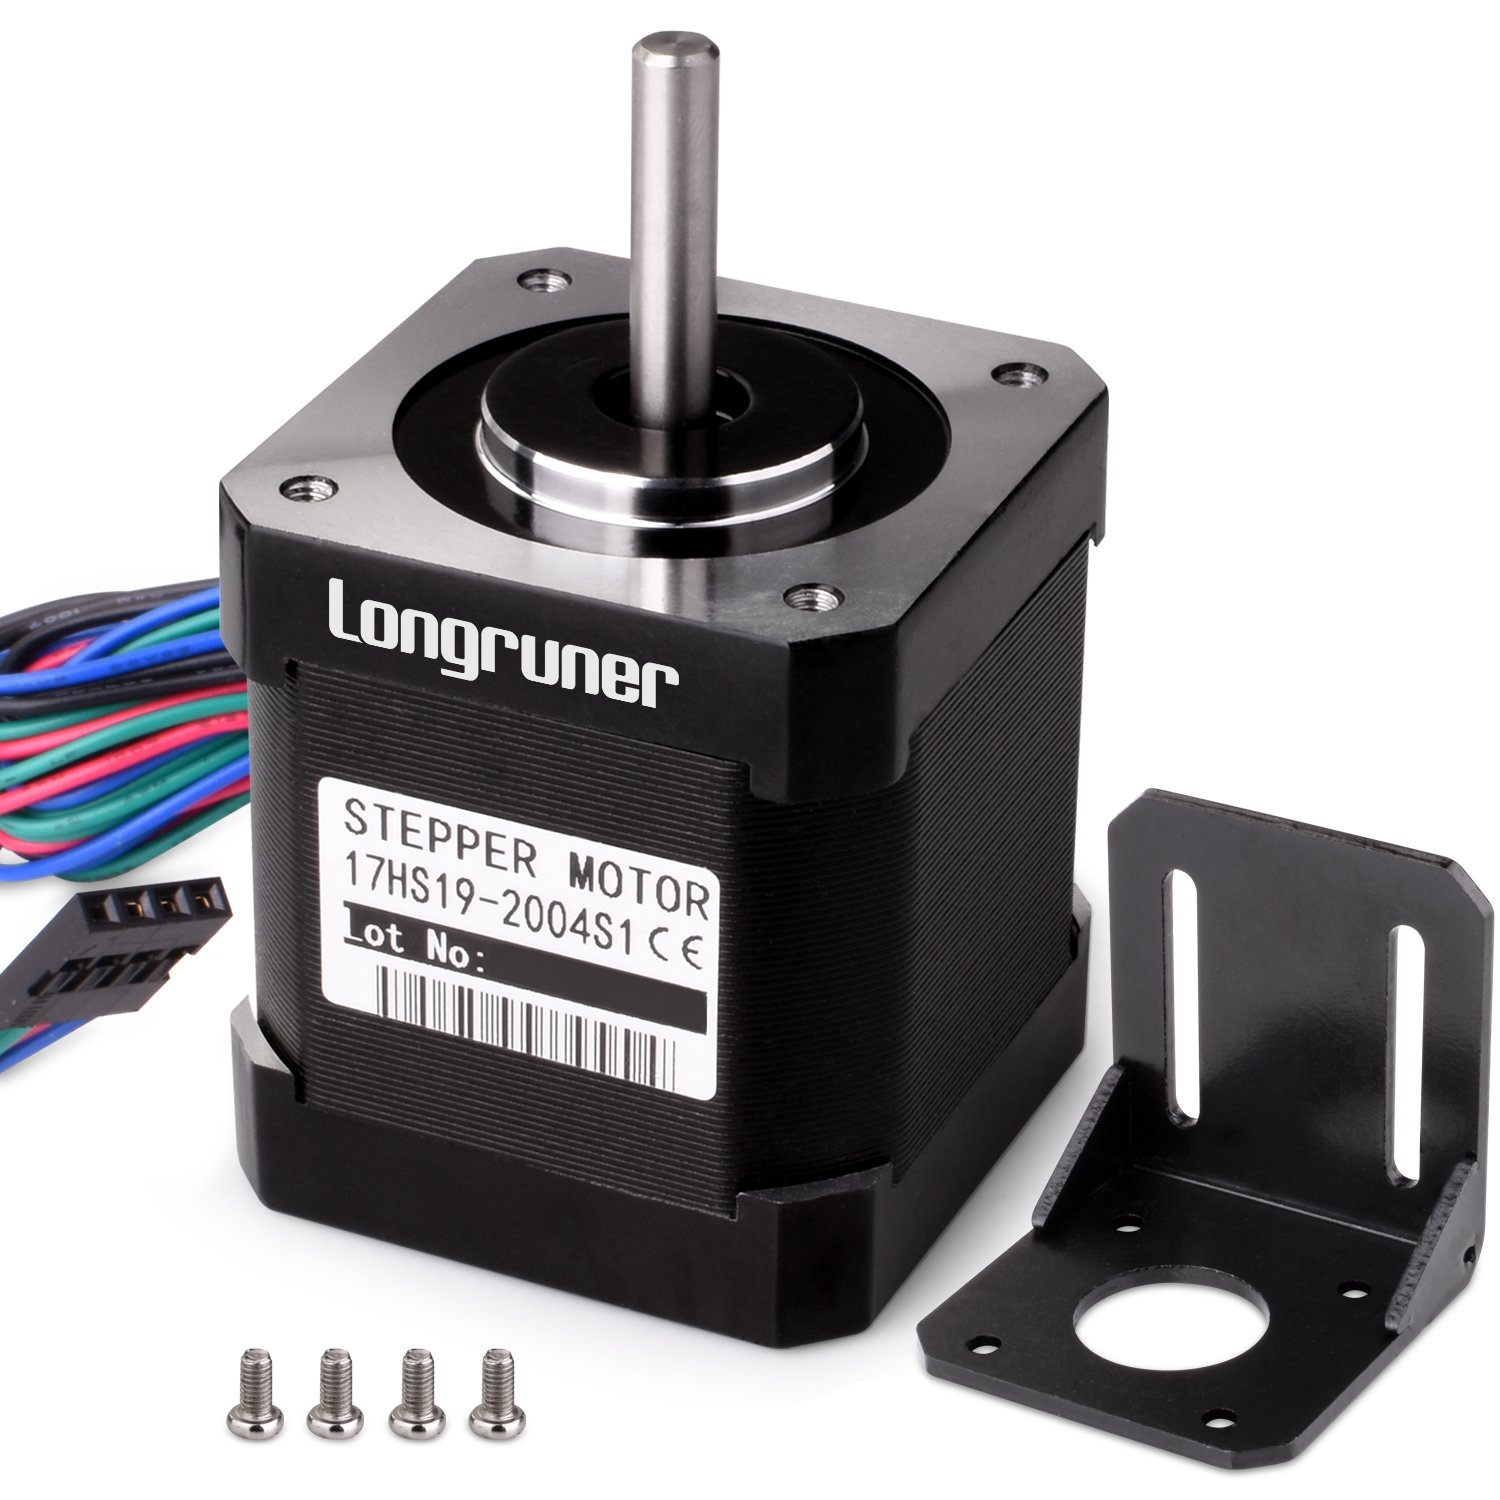 Stepper Motor, Longruner Nema 17 Bipolar 42mm 37oz.in(26Ncm) 12V 0.4A Lead 3D Printer Hobby CNC 17HS13-0404S (Stepper Motor) LQD04